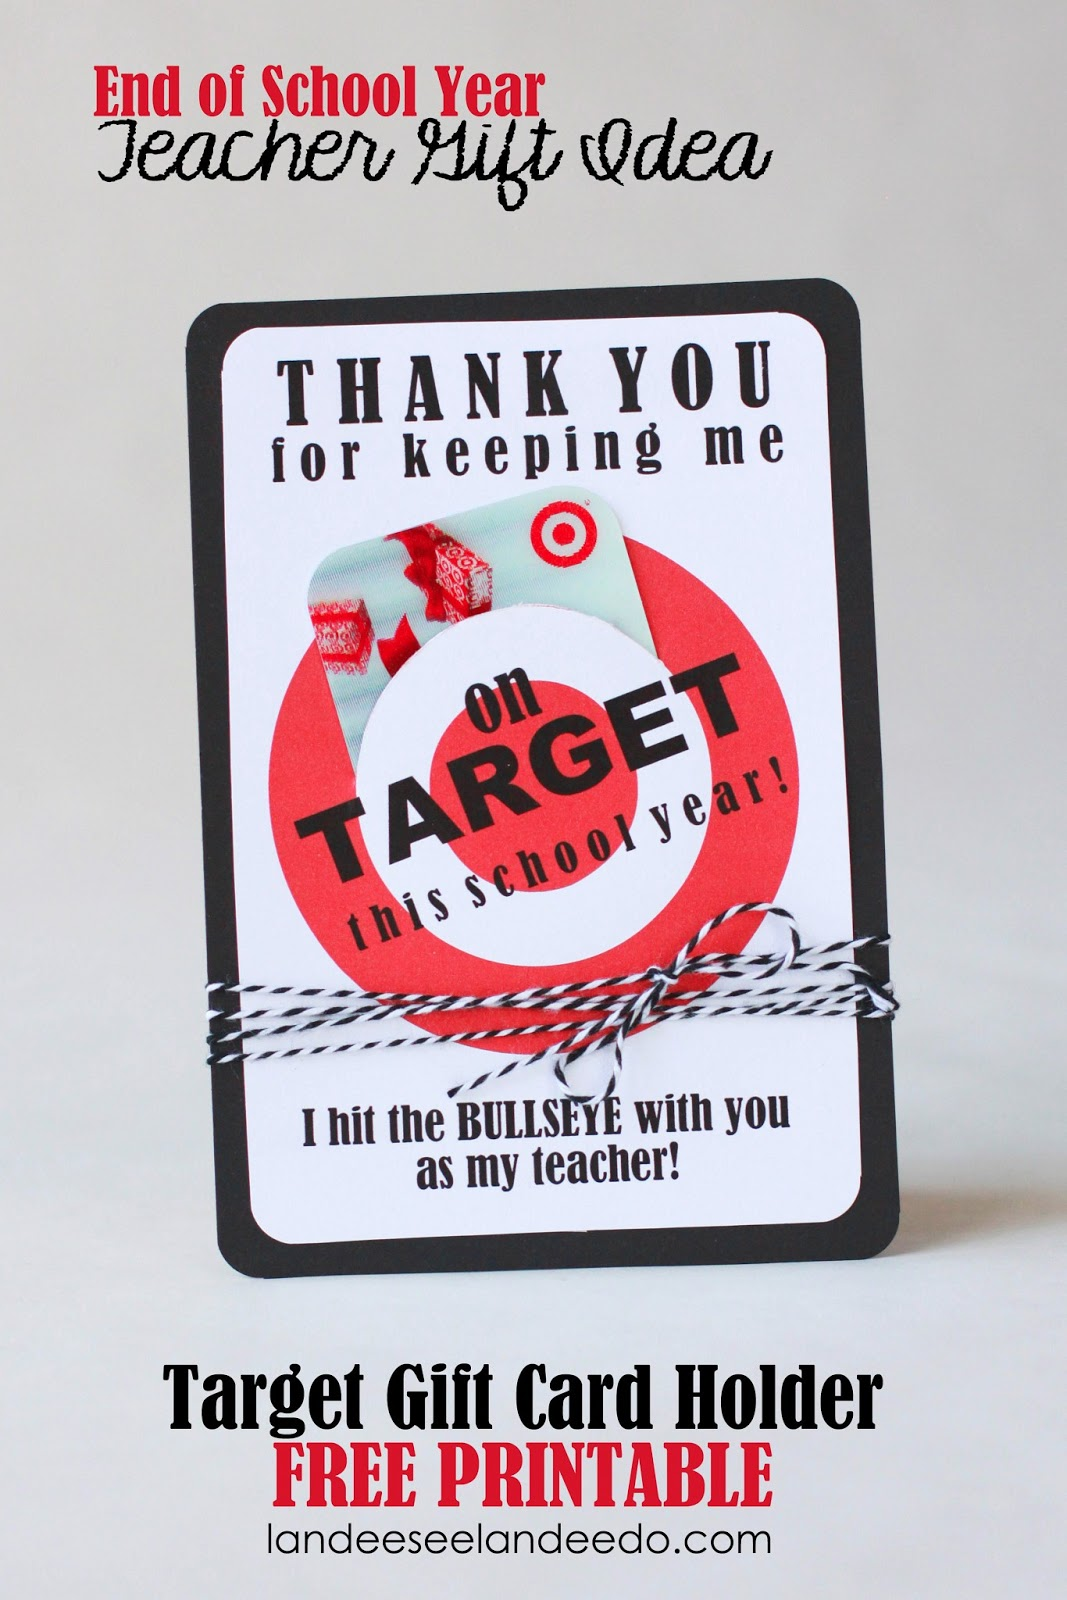 Teacher Gift Idea: Printable Target Gift Card Holder